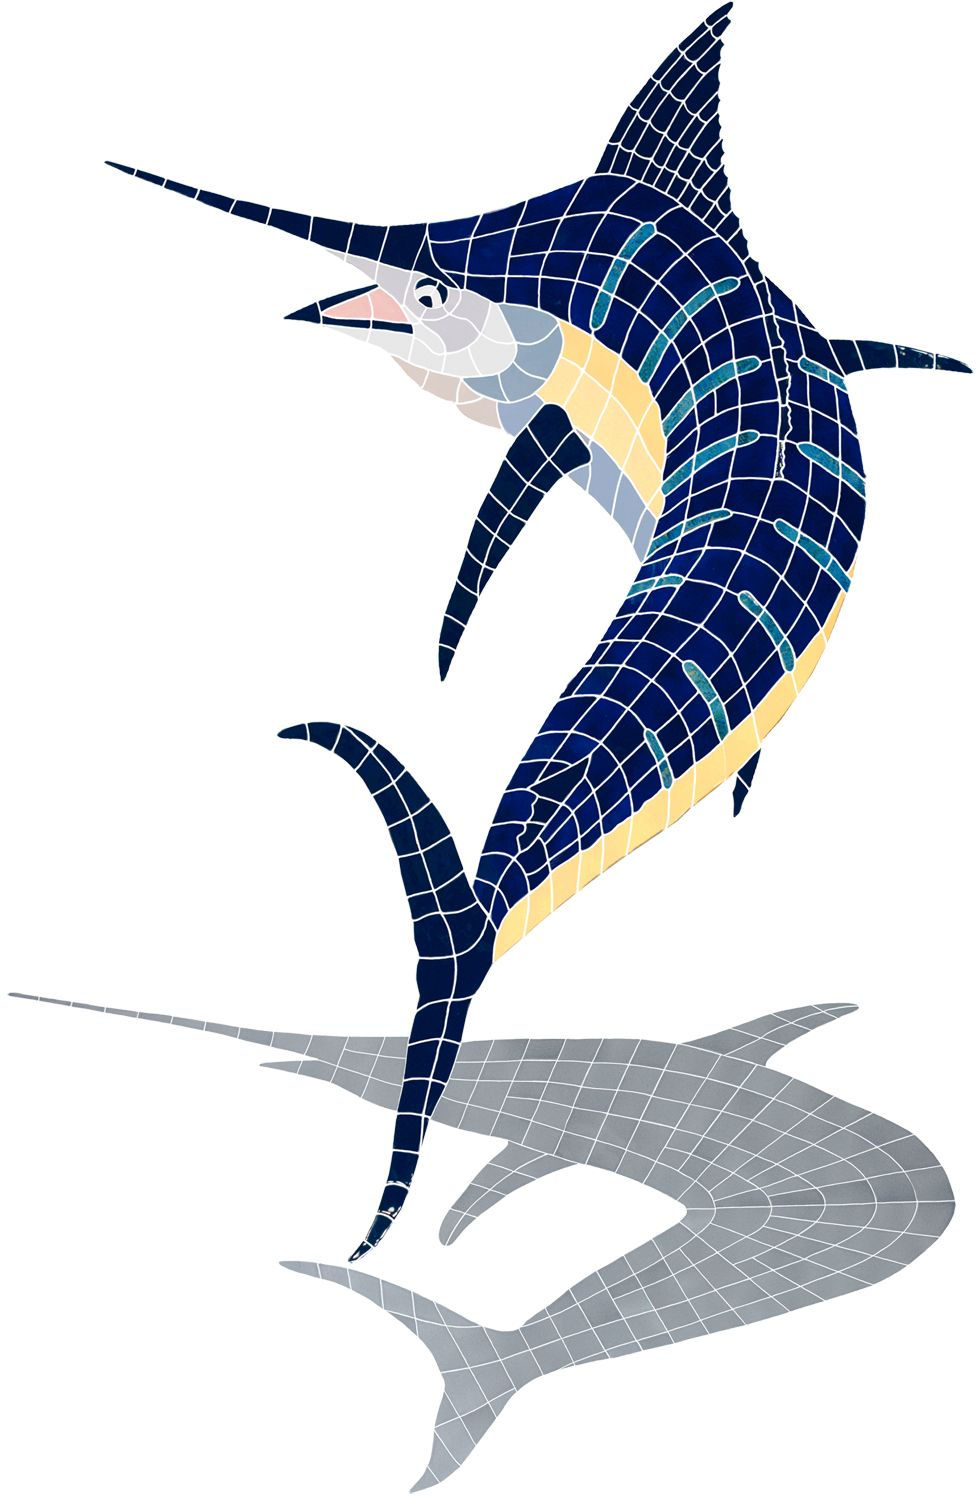 Action marlin w shadow mosaic tile design by artistry in mosaics action marlin w shadow mosaic tile design by artistry in mosaics available at aquablu dailygadgetfo Images